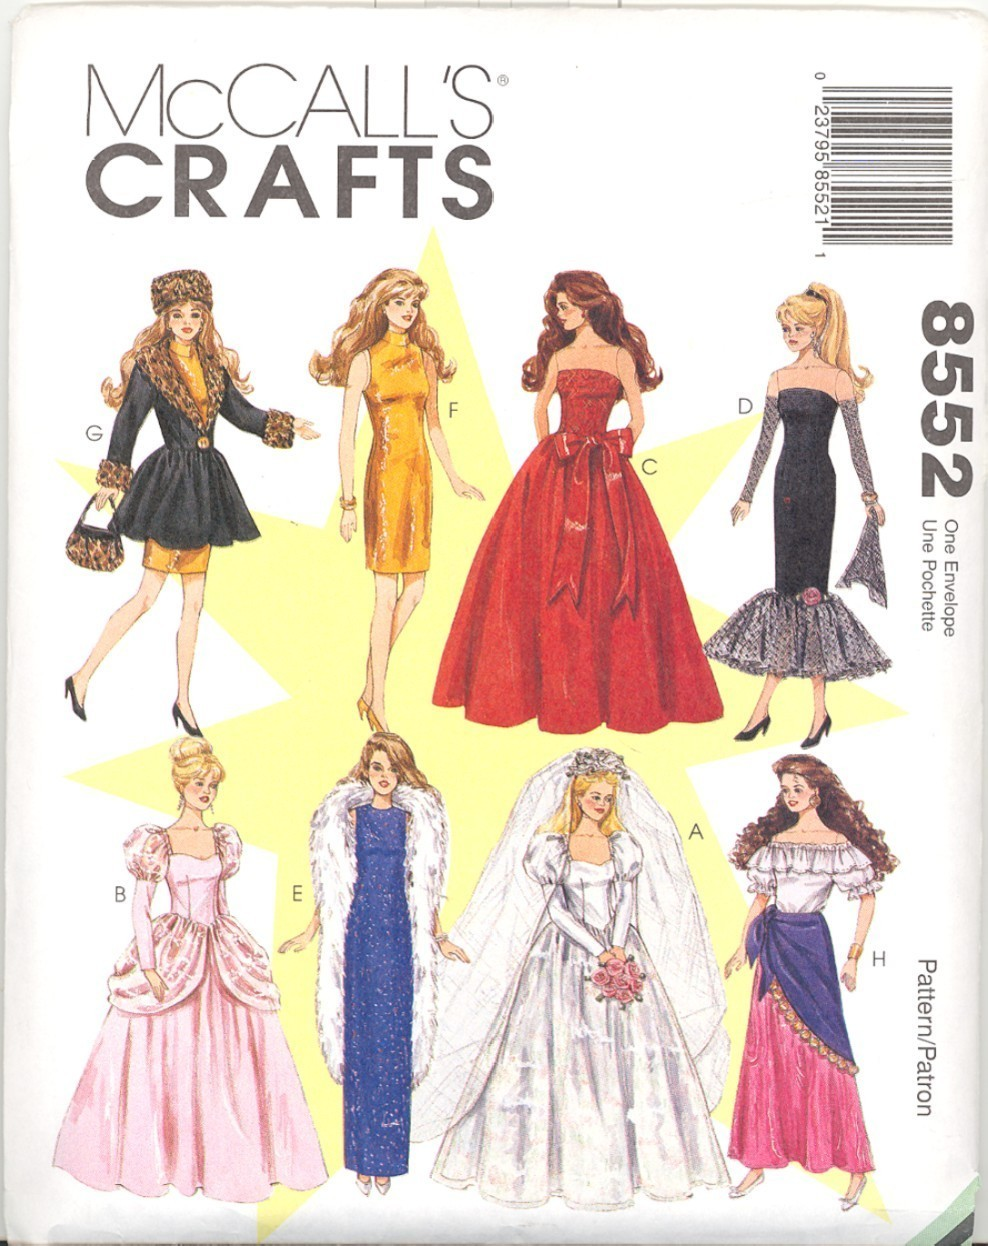 New 11 half inch Fashion Doll Wedding Gypsy Gown Clothes McCalls 8552 Pattern McCall's